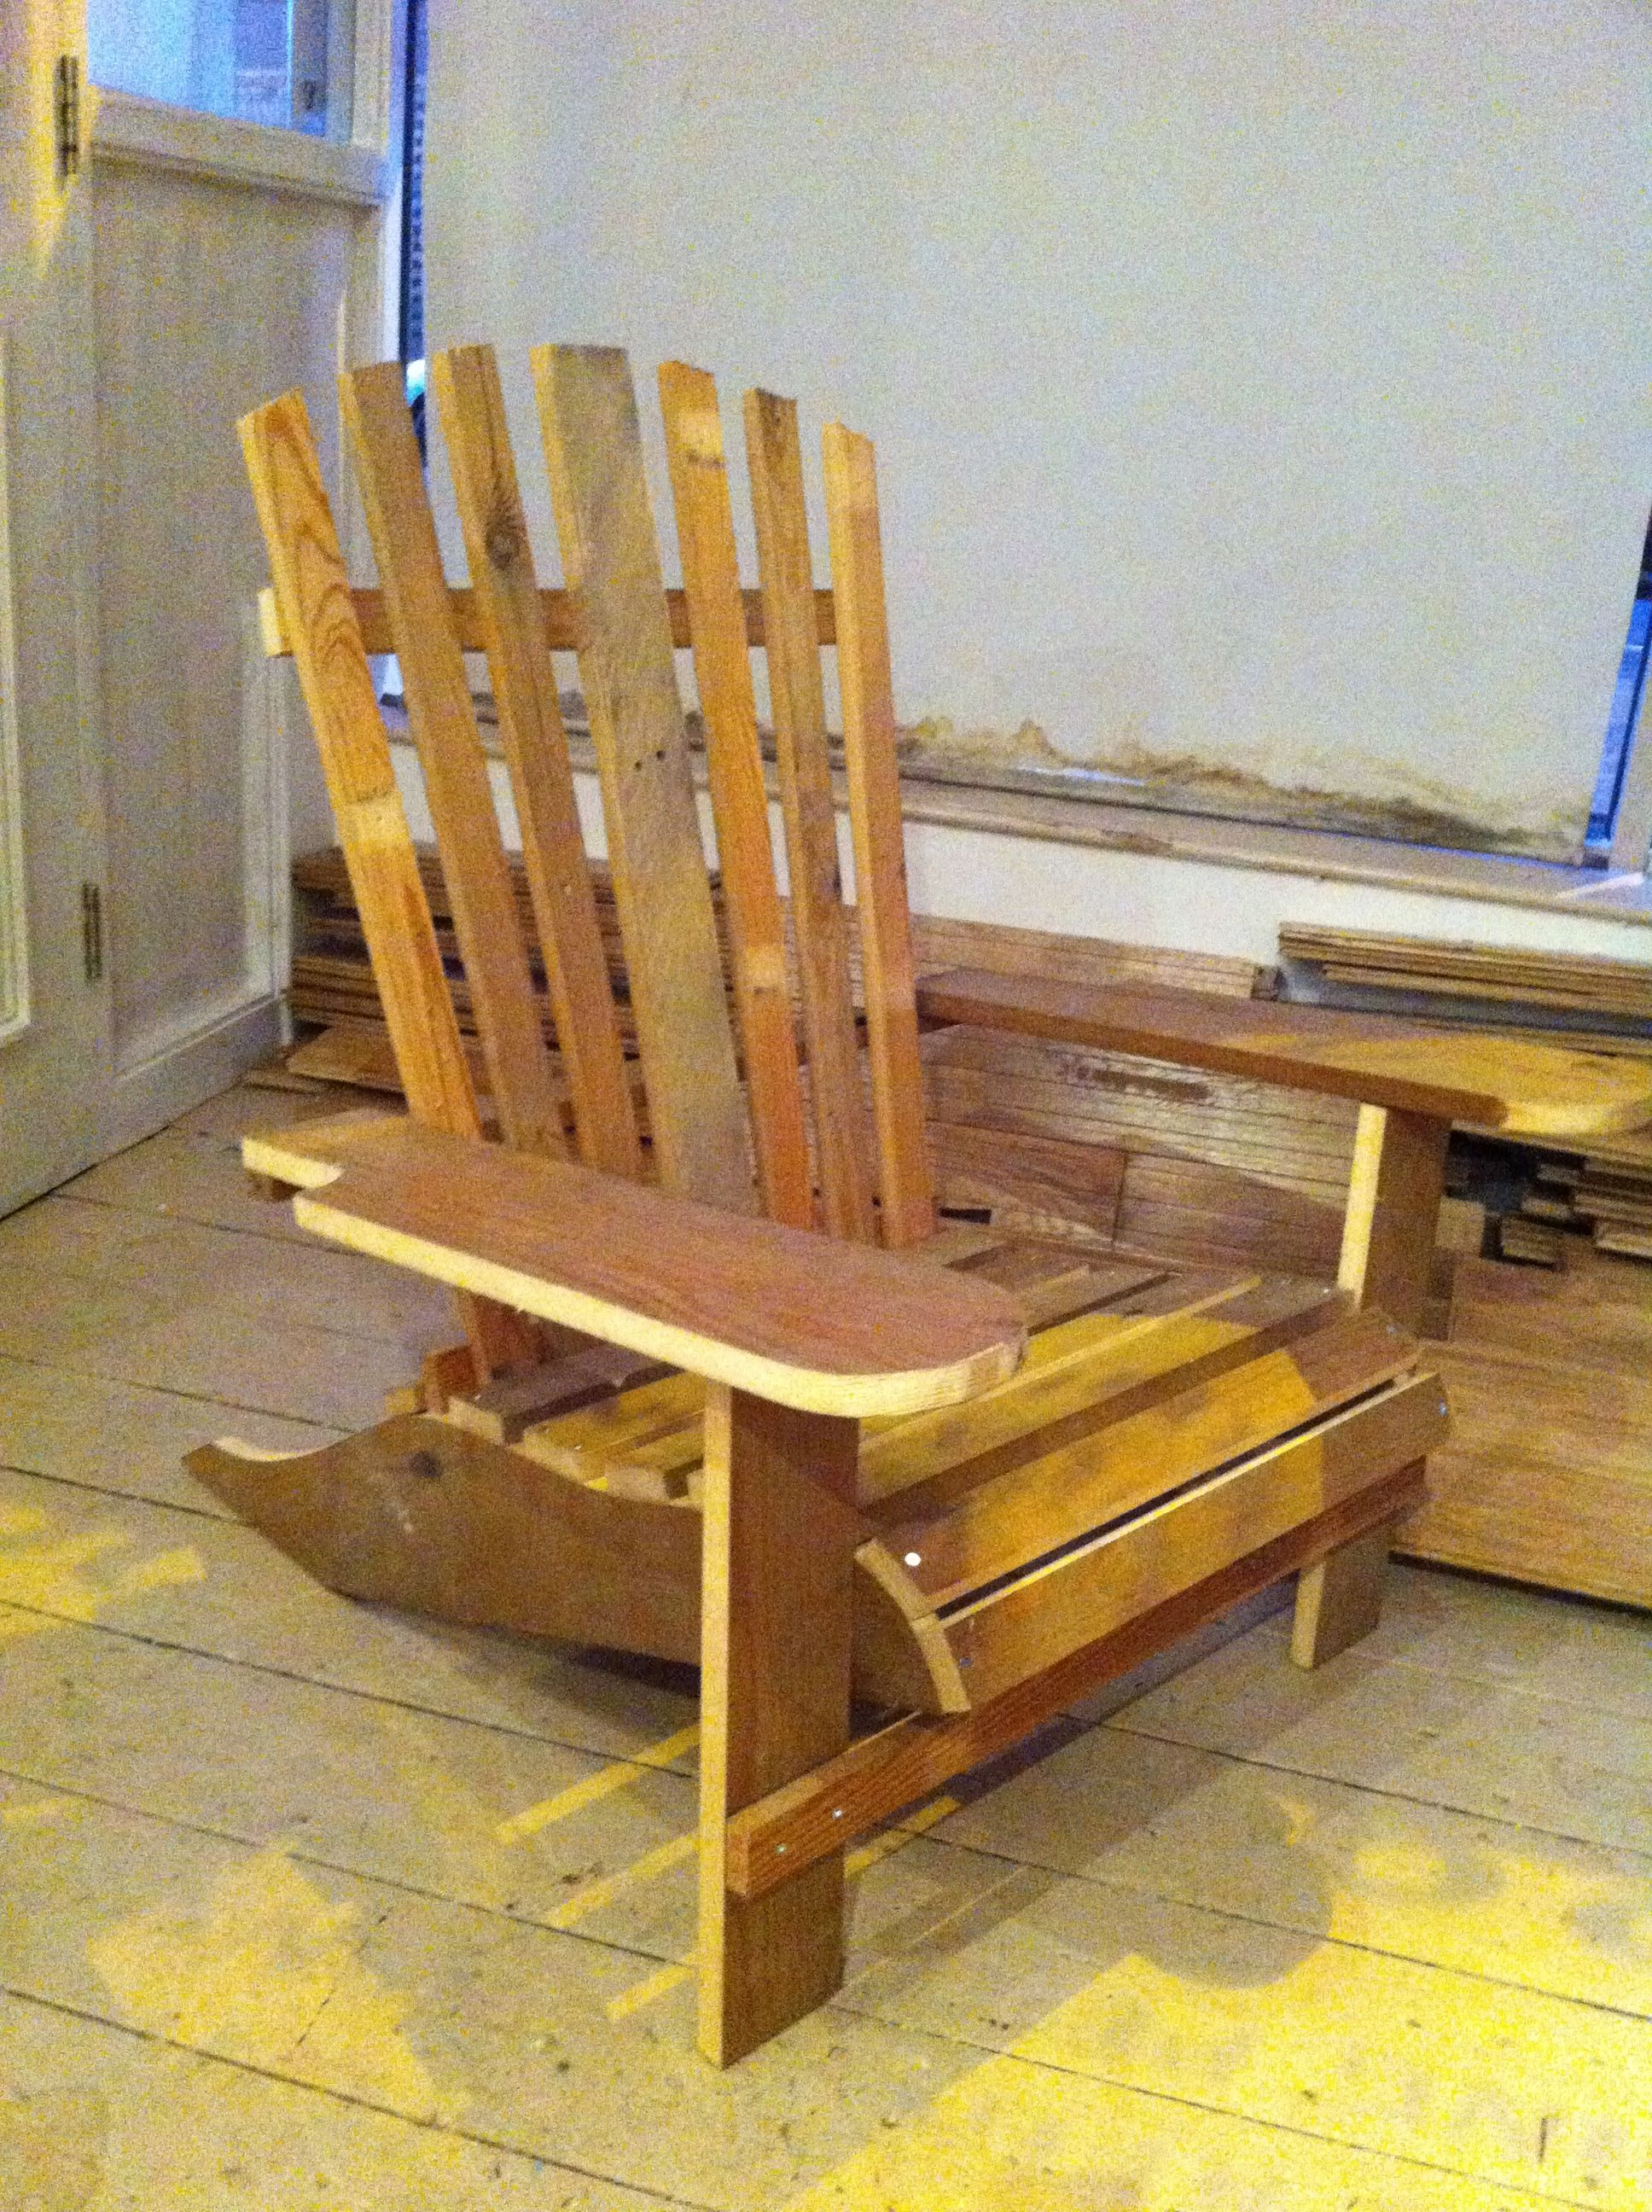 Plans to build Adirondack Glider Chair Plans Download PDF